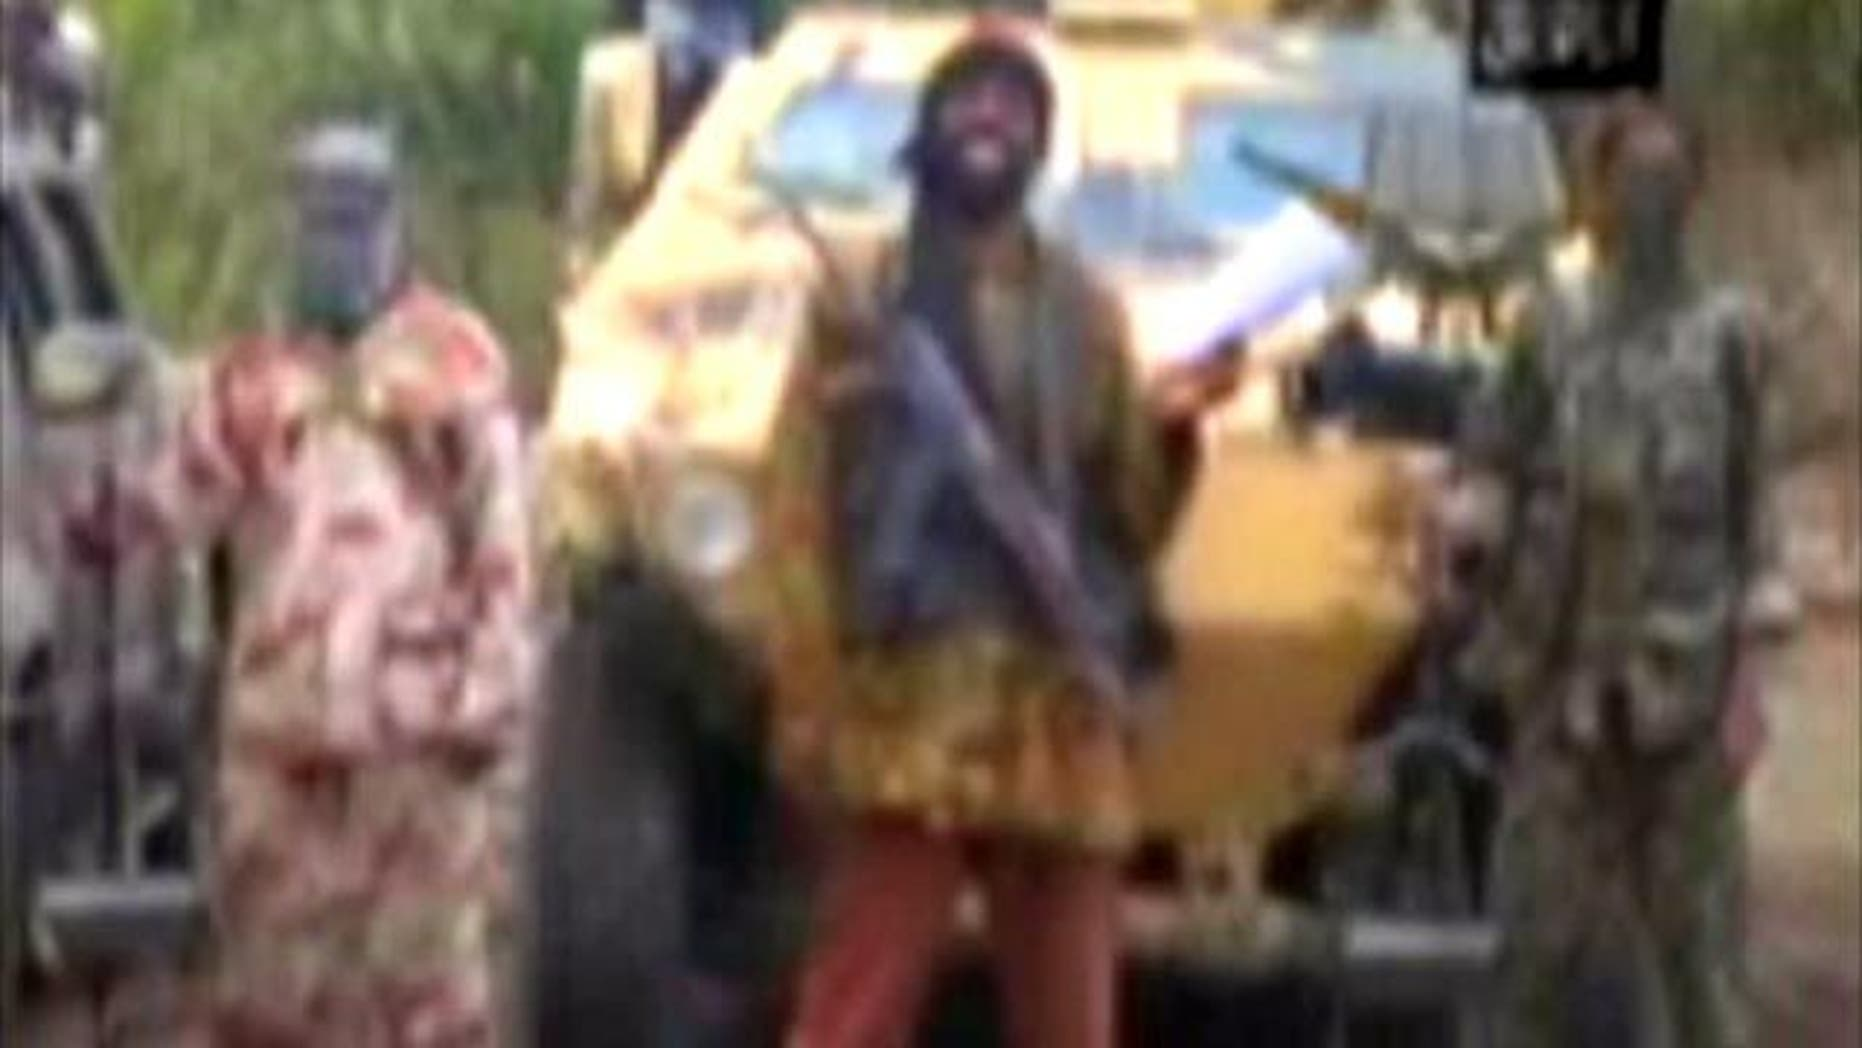 Extremist group Boko Haram raises funds to carry out their attacks by robbing banks and military camps as well as kidnapping for ransom.